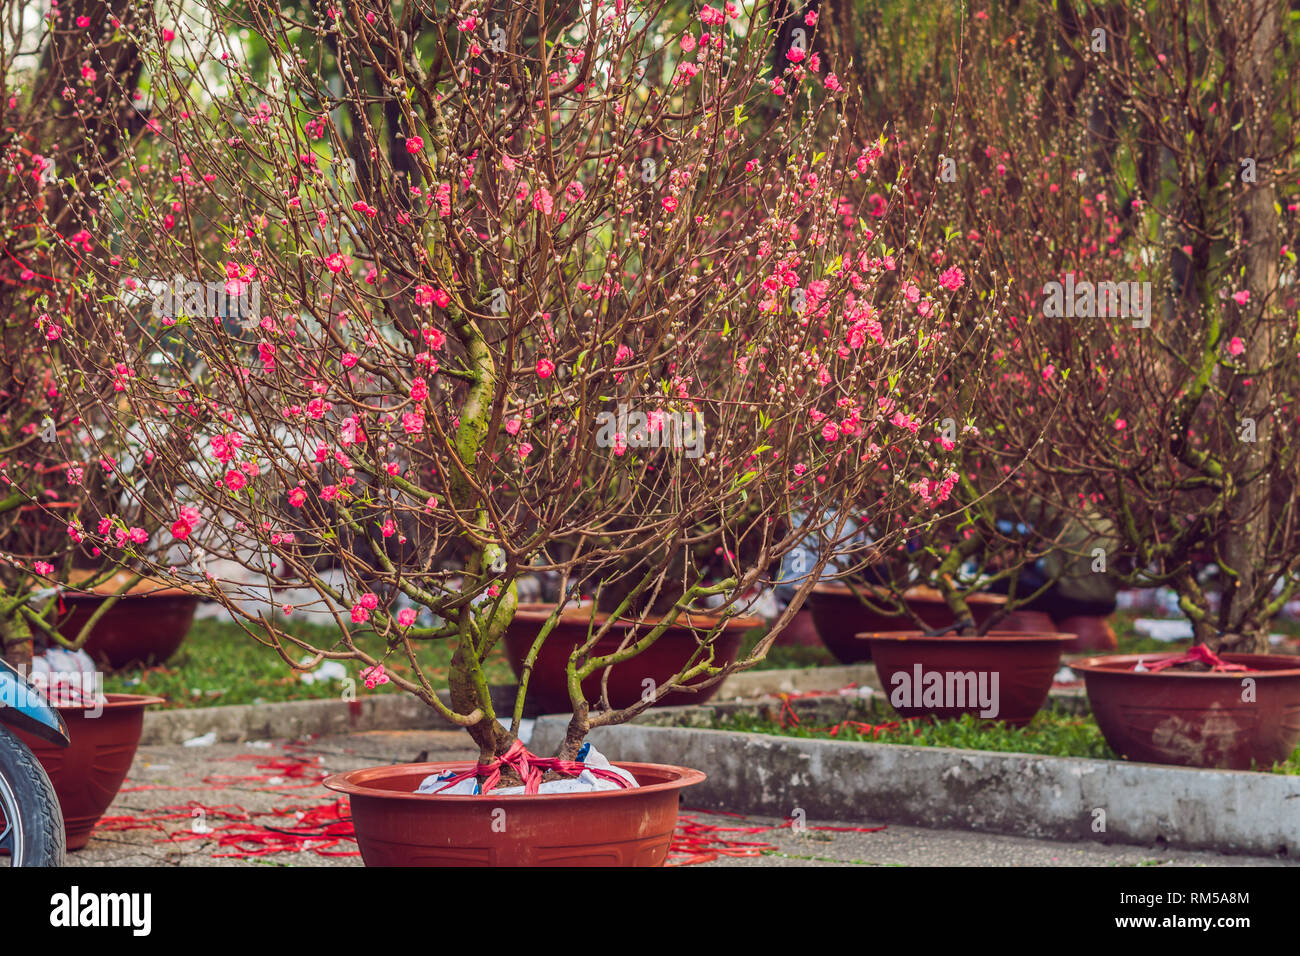 pink blooming trees in honor of the Vietnamese new year. Lunar new year flower market. Chinese New Year. Tet - Stock Image